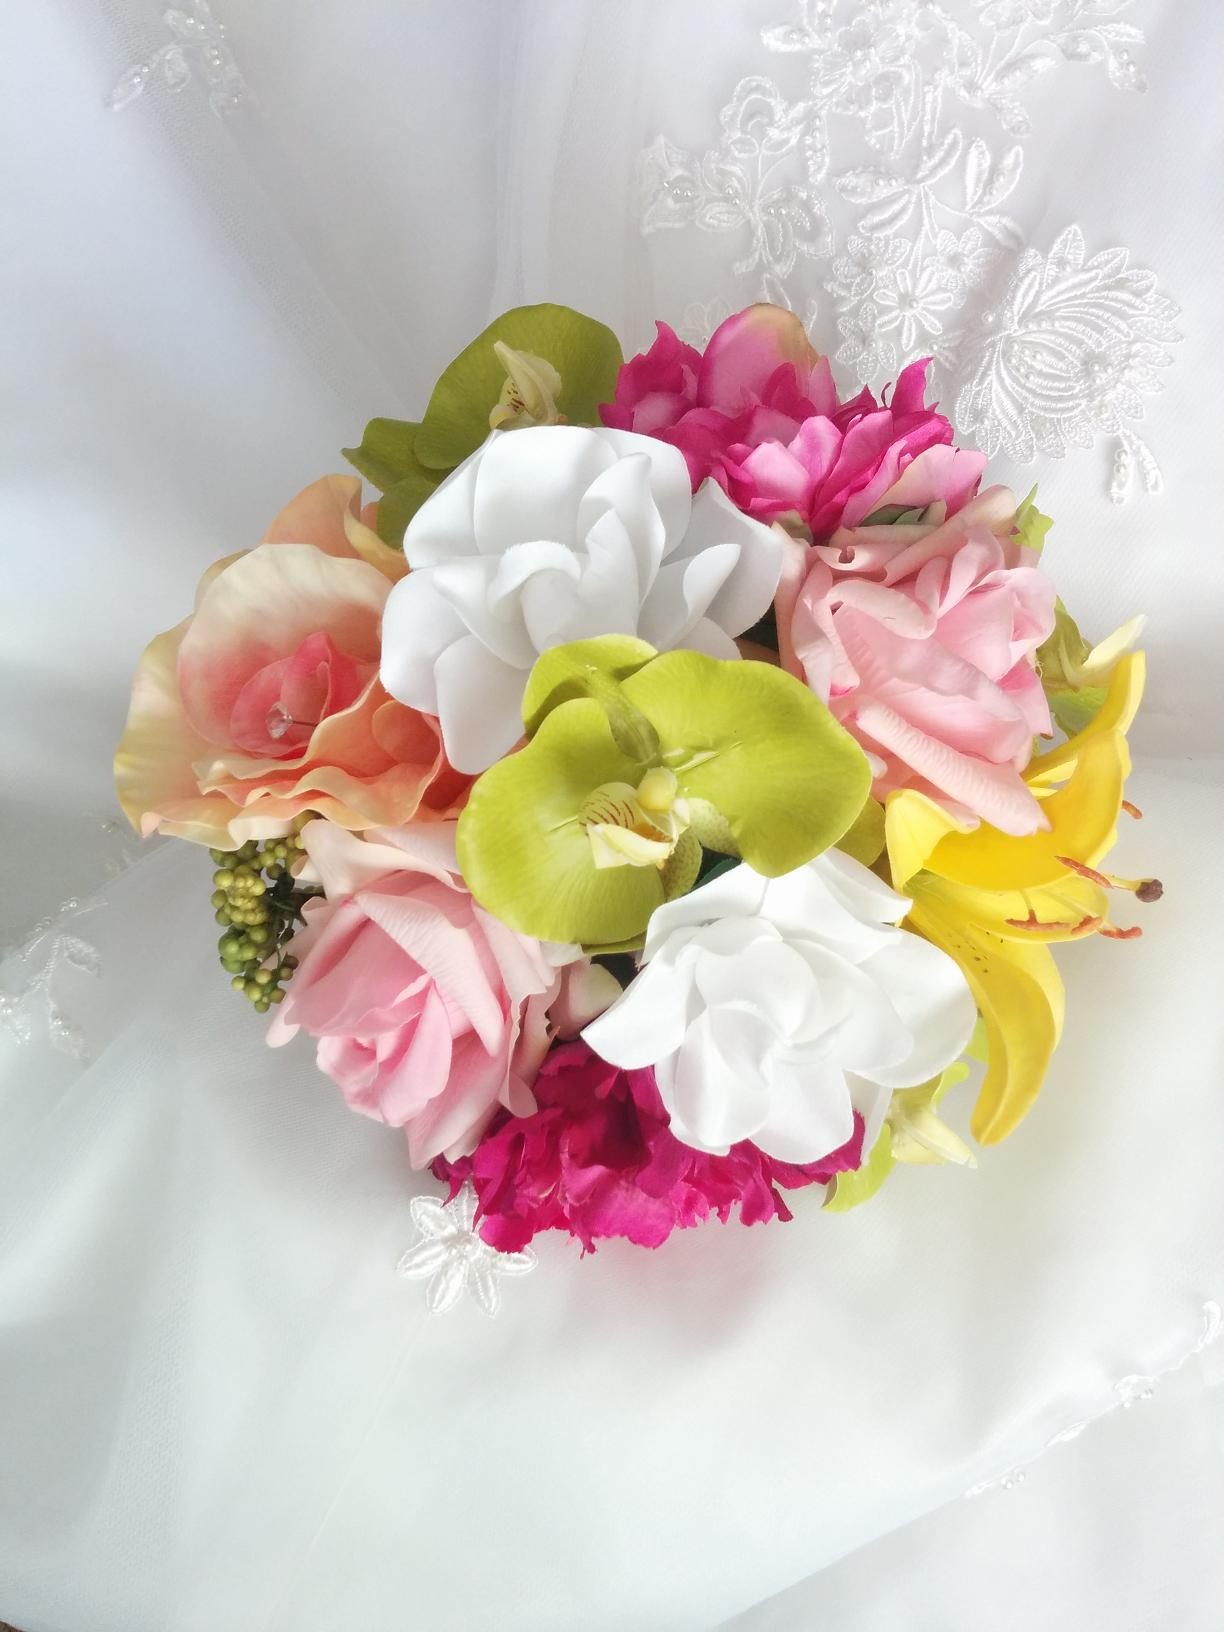 Silk Wedding Bouquets, Natural Touch wedding Flowers, Silk wedding flowers, real touch wedding flowers, silk wedding flowers in Canada and USA, beach wedding bouquets, destination wedding flowers